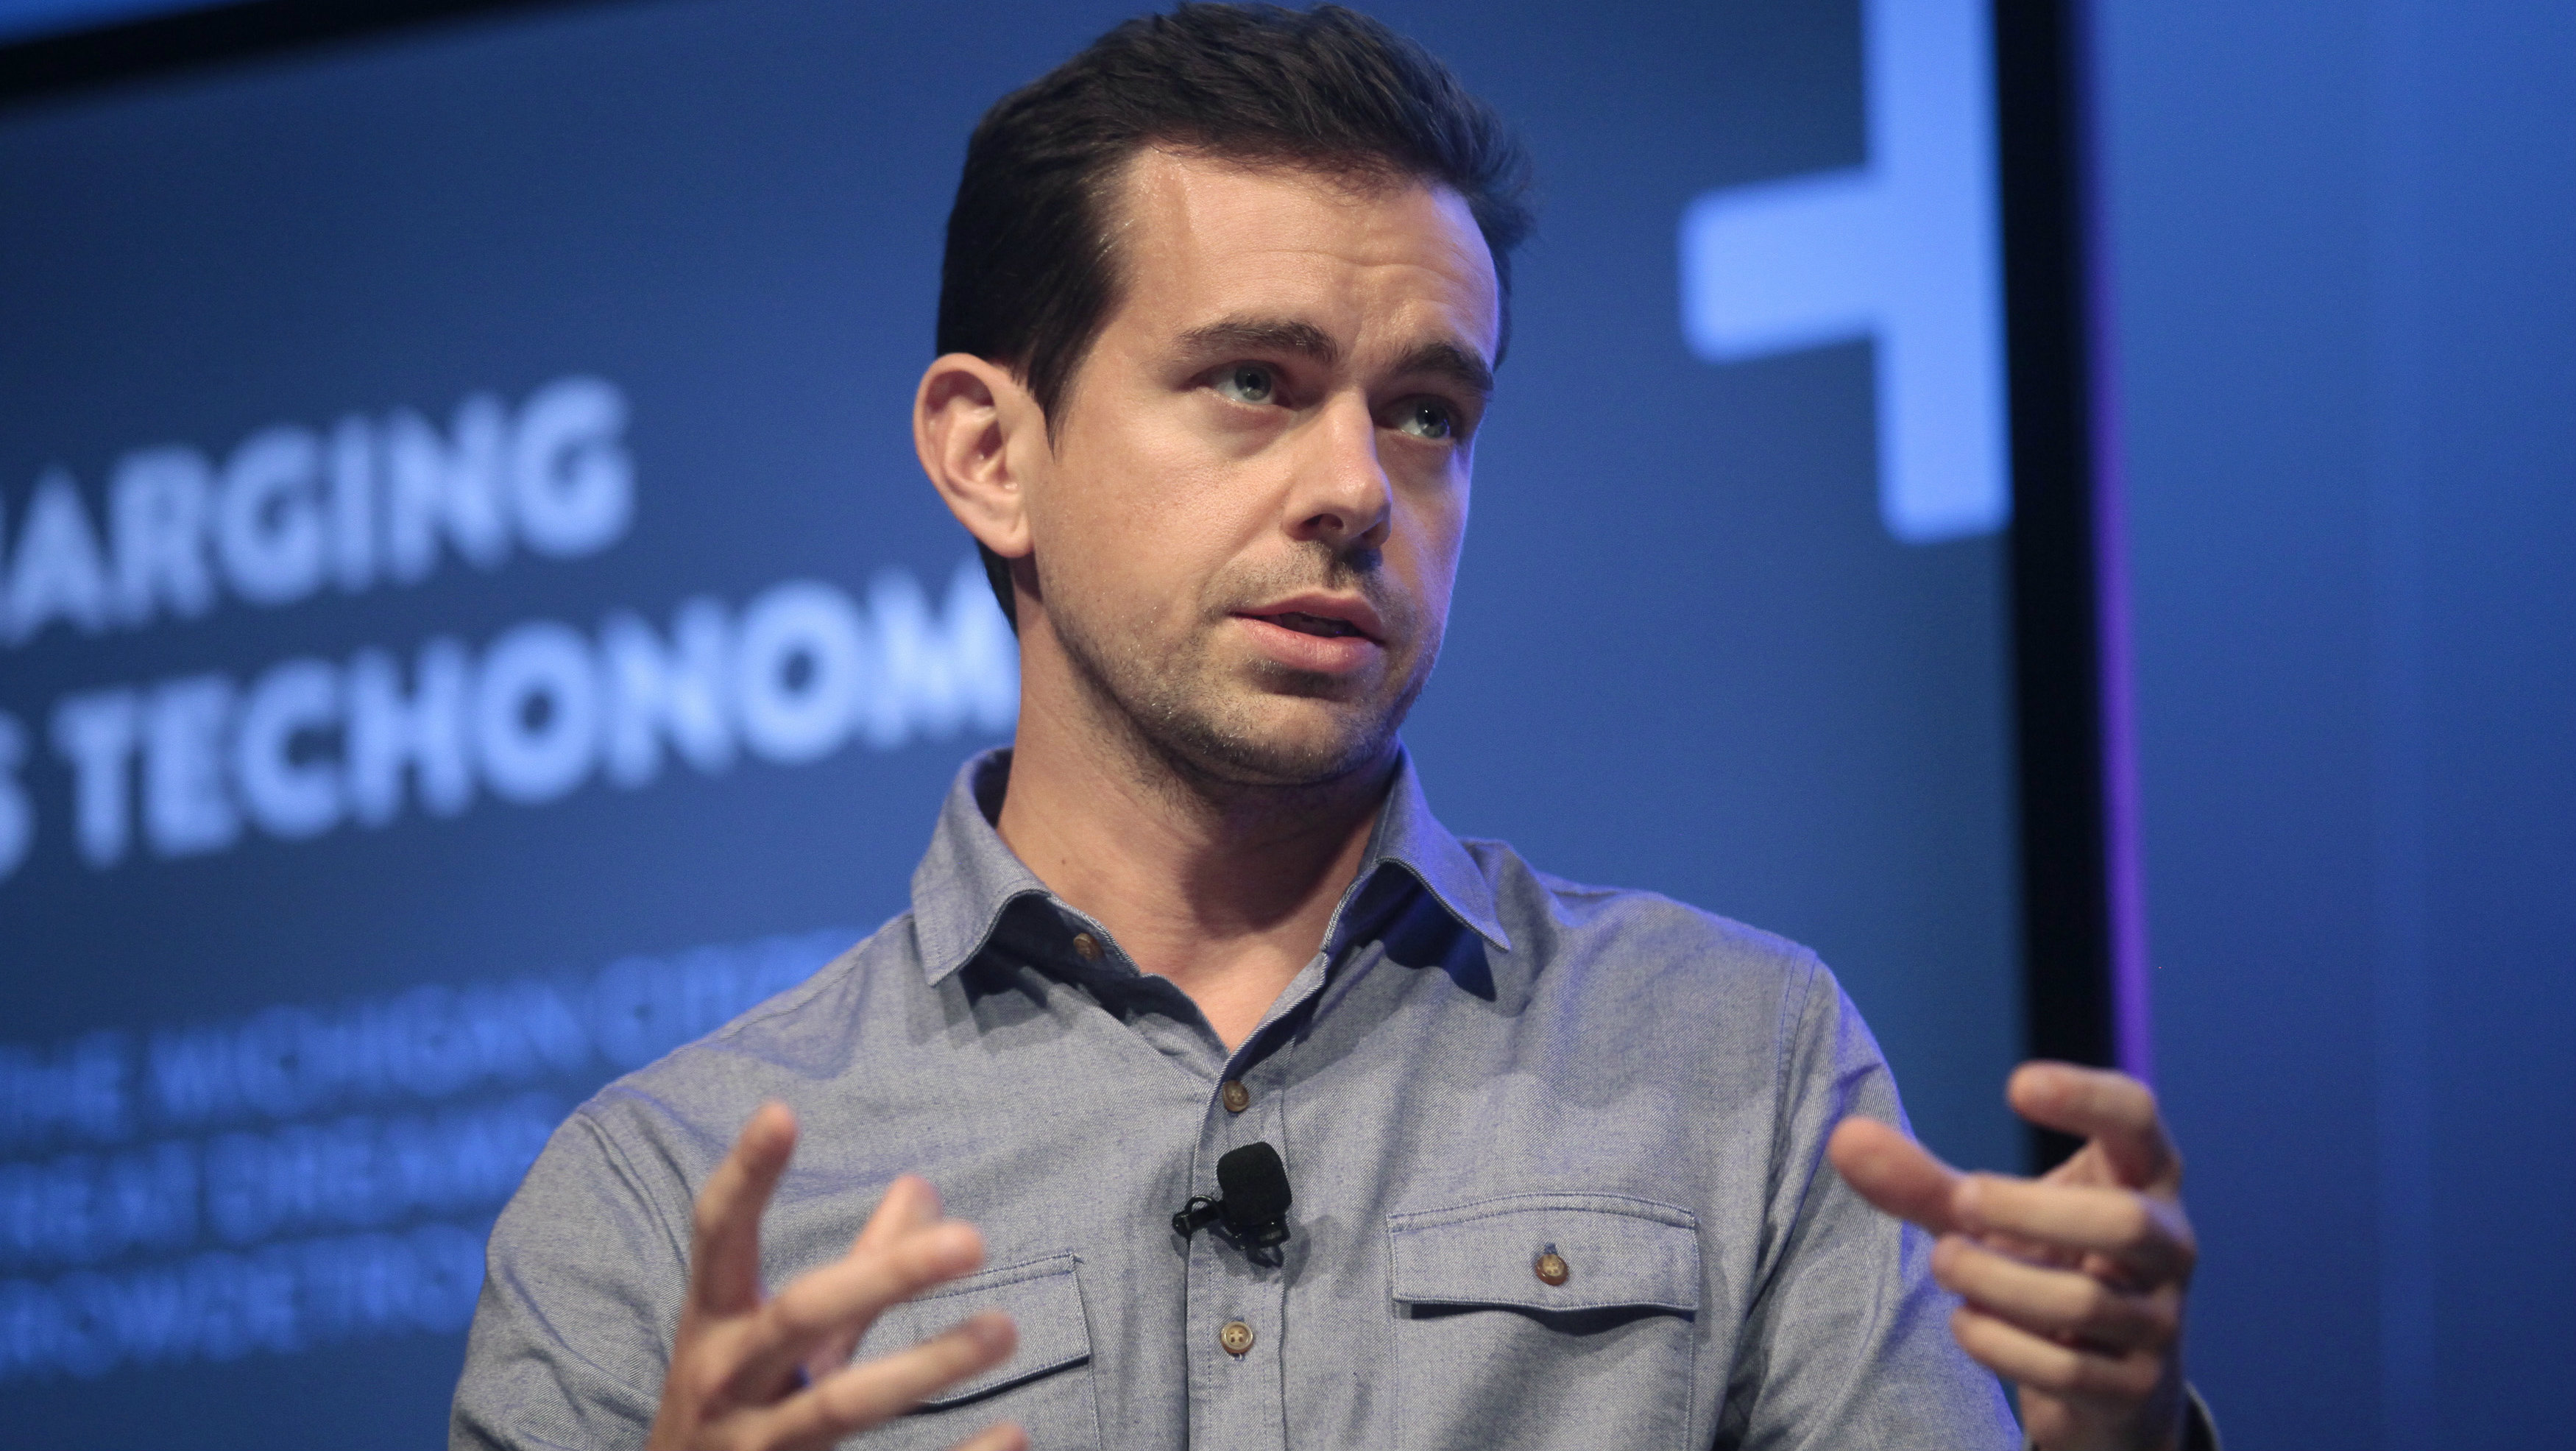 Jack Dorsey, chairman of Twitter and CEO of Square, takes part in a Techonomy Detroit panel discussion held at Wayne State University in Detroit, Michigan September 17, 2013.